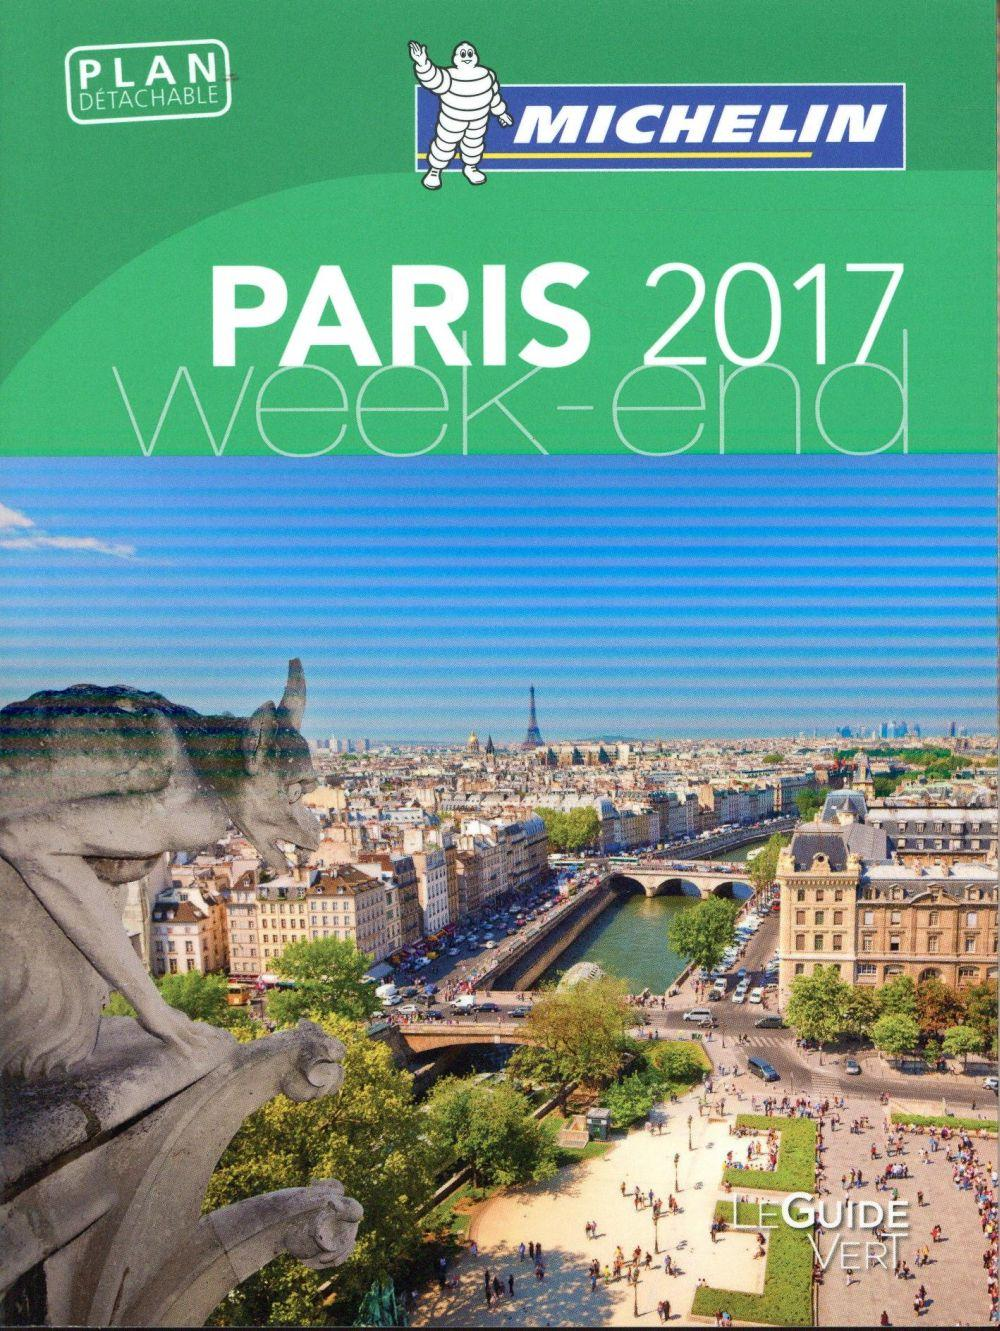 Paris Travel Guide - Expert Picks for your Vacation